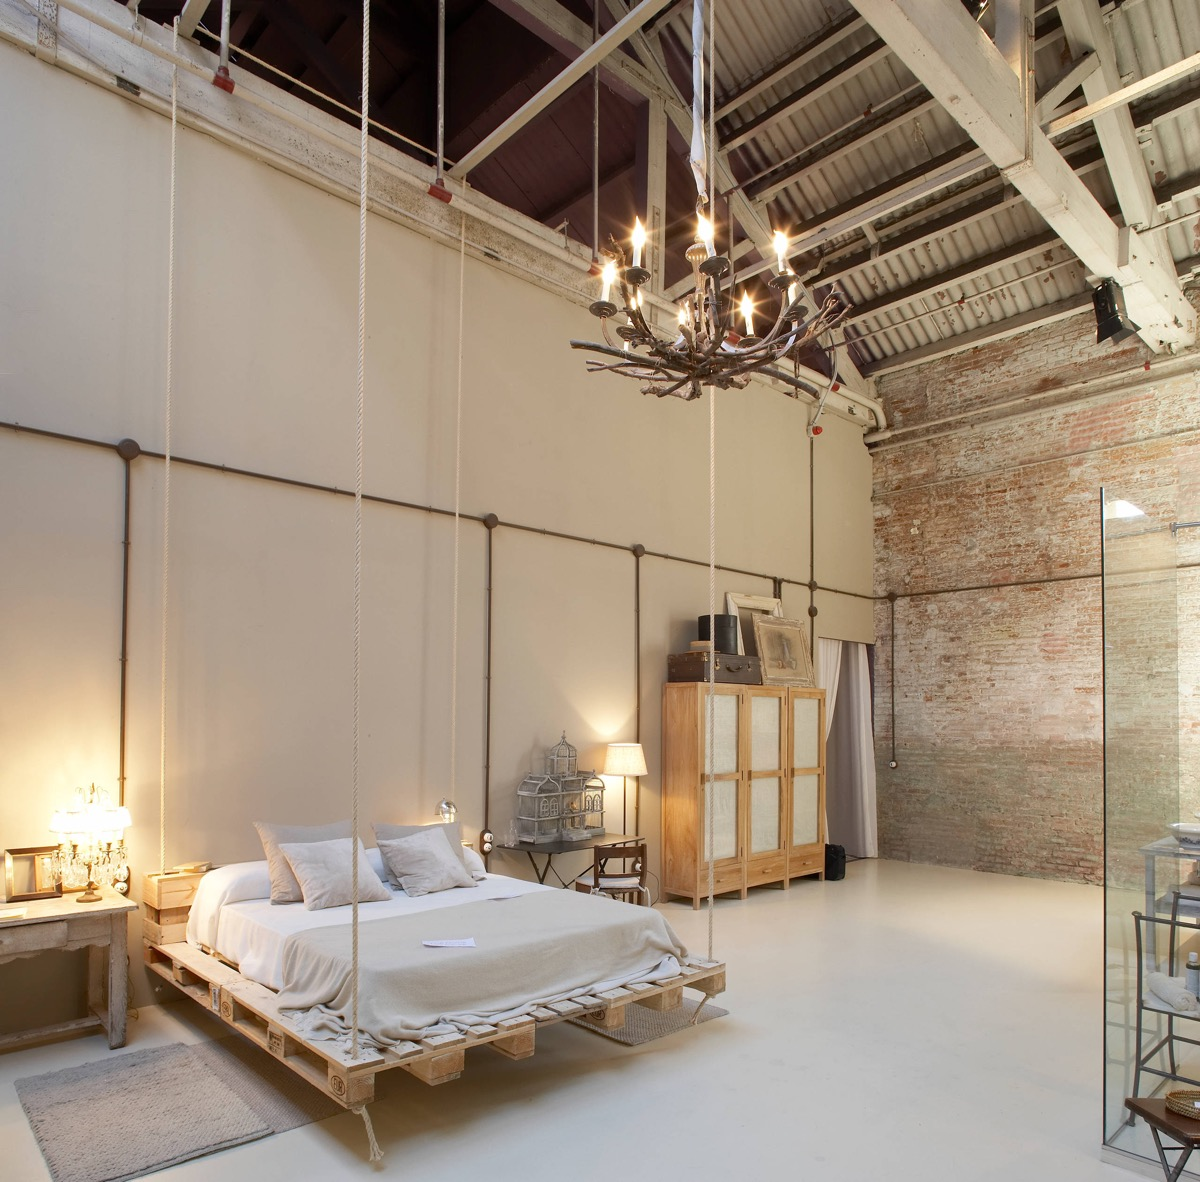 Rustic Bedrooms: Guide And Inspiration For Designing Them images 20